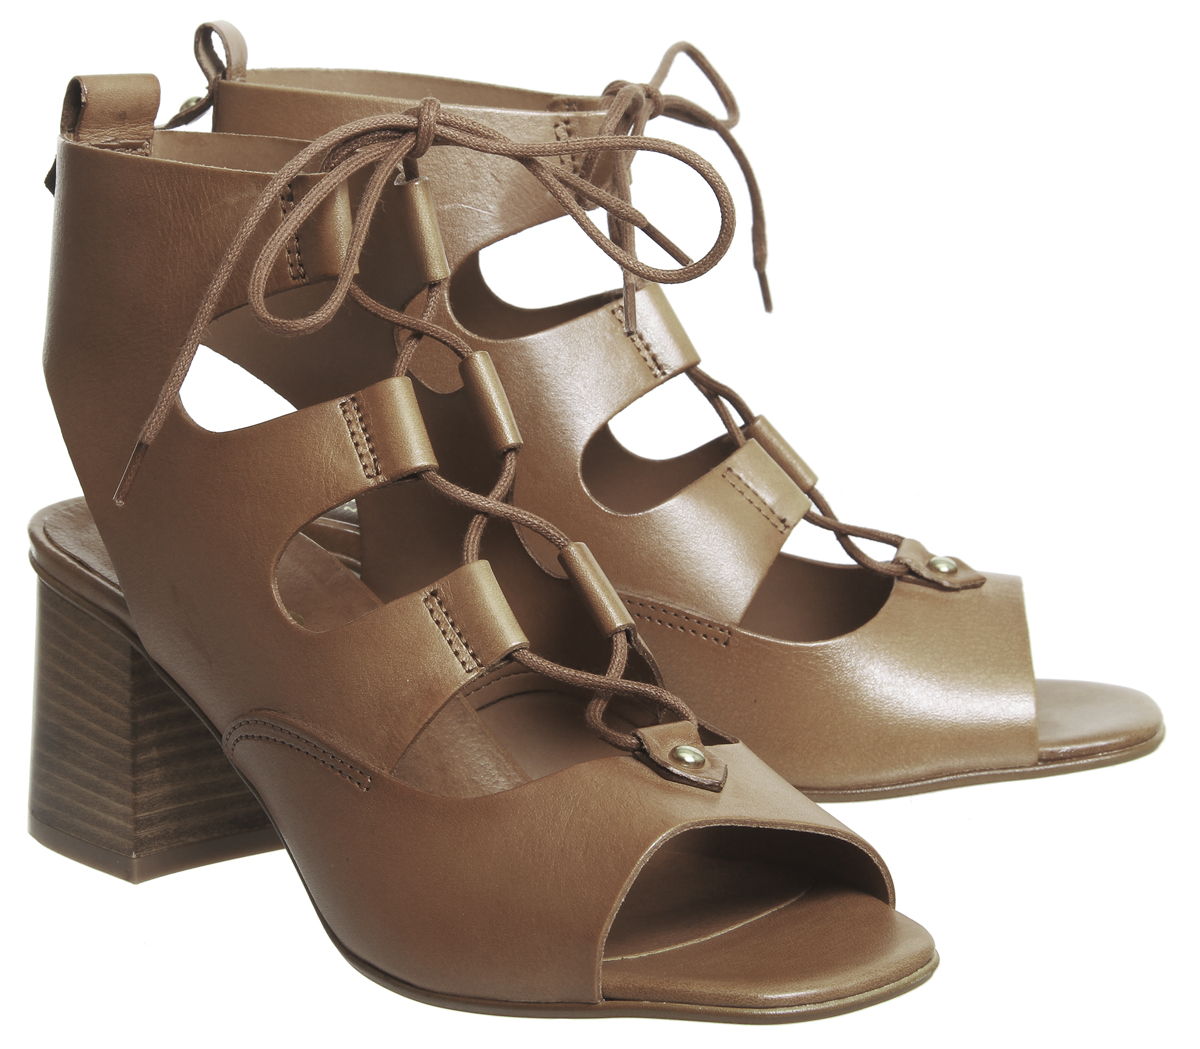 Damenschuhe Office Mallorca Ghillie Block Heels TAN LEATHER Heels